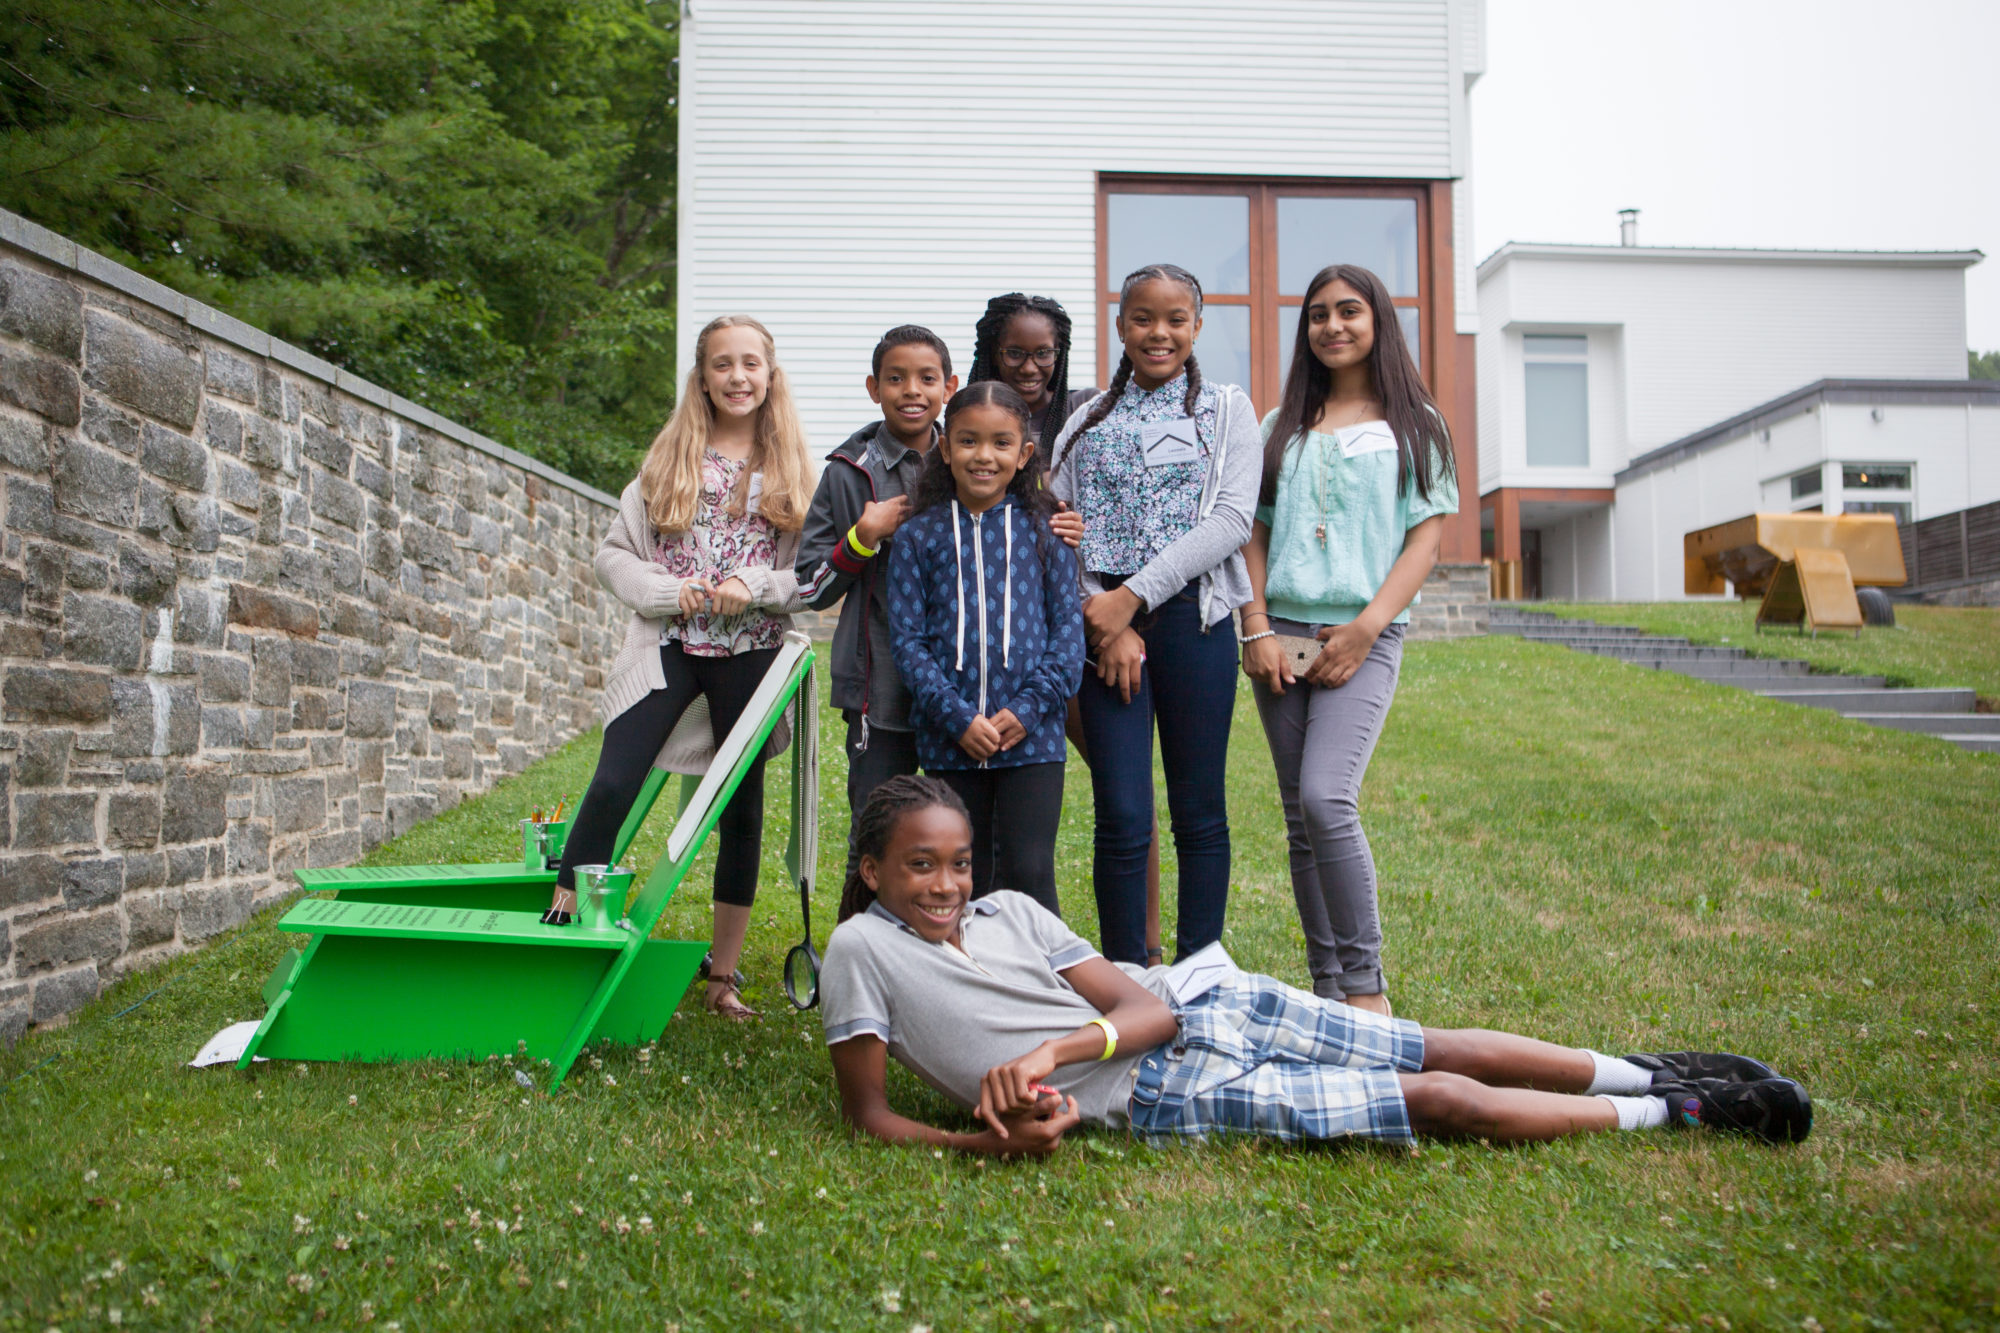 A group of students in the Museum's Sculpture Garden by a green lawn chair.